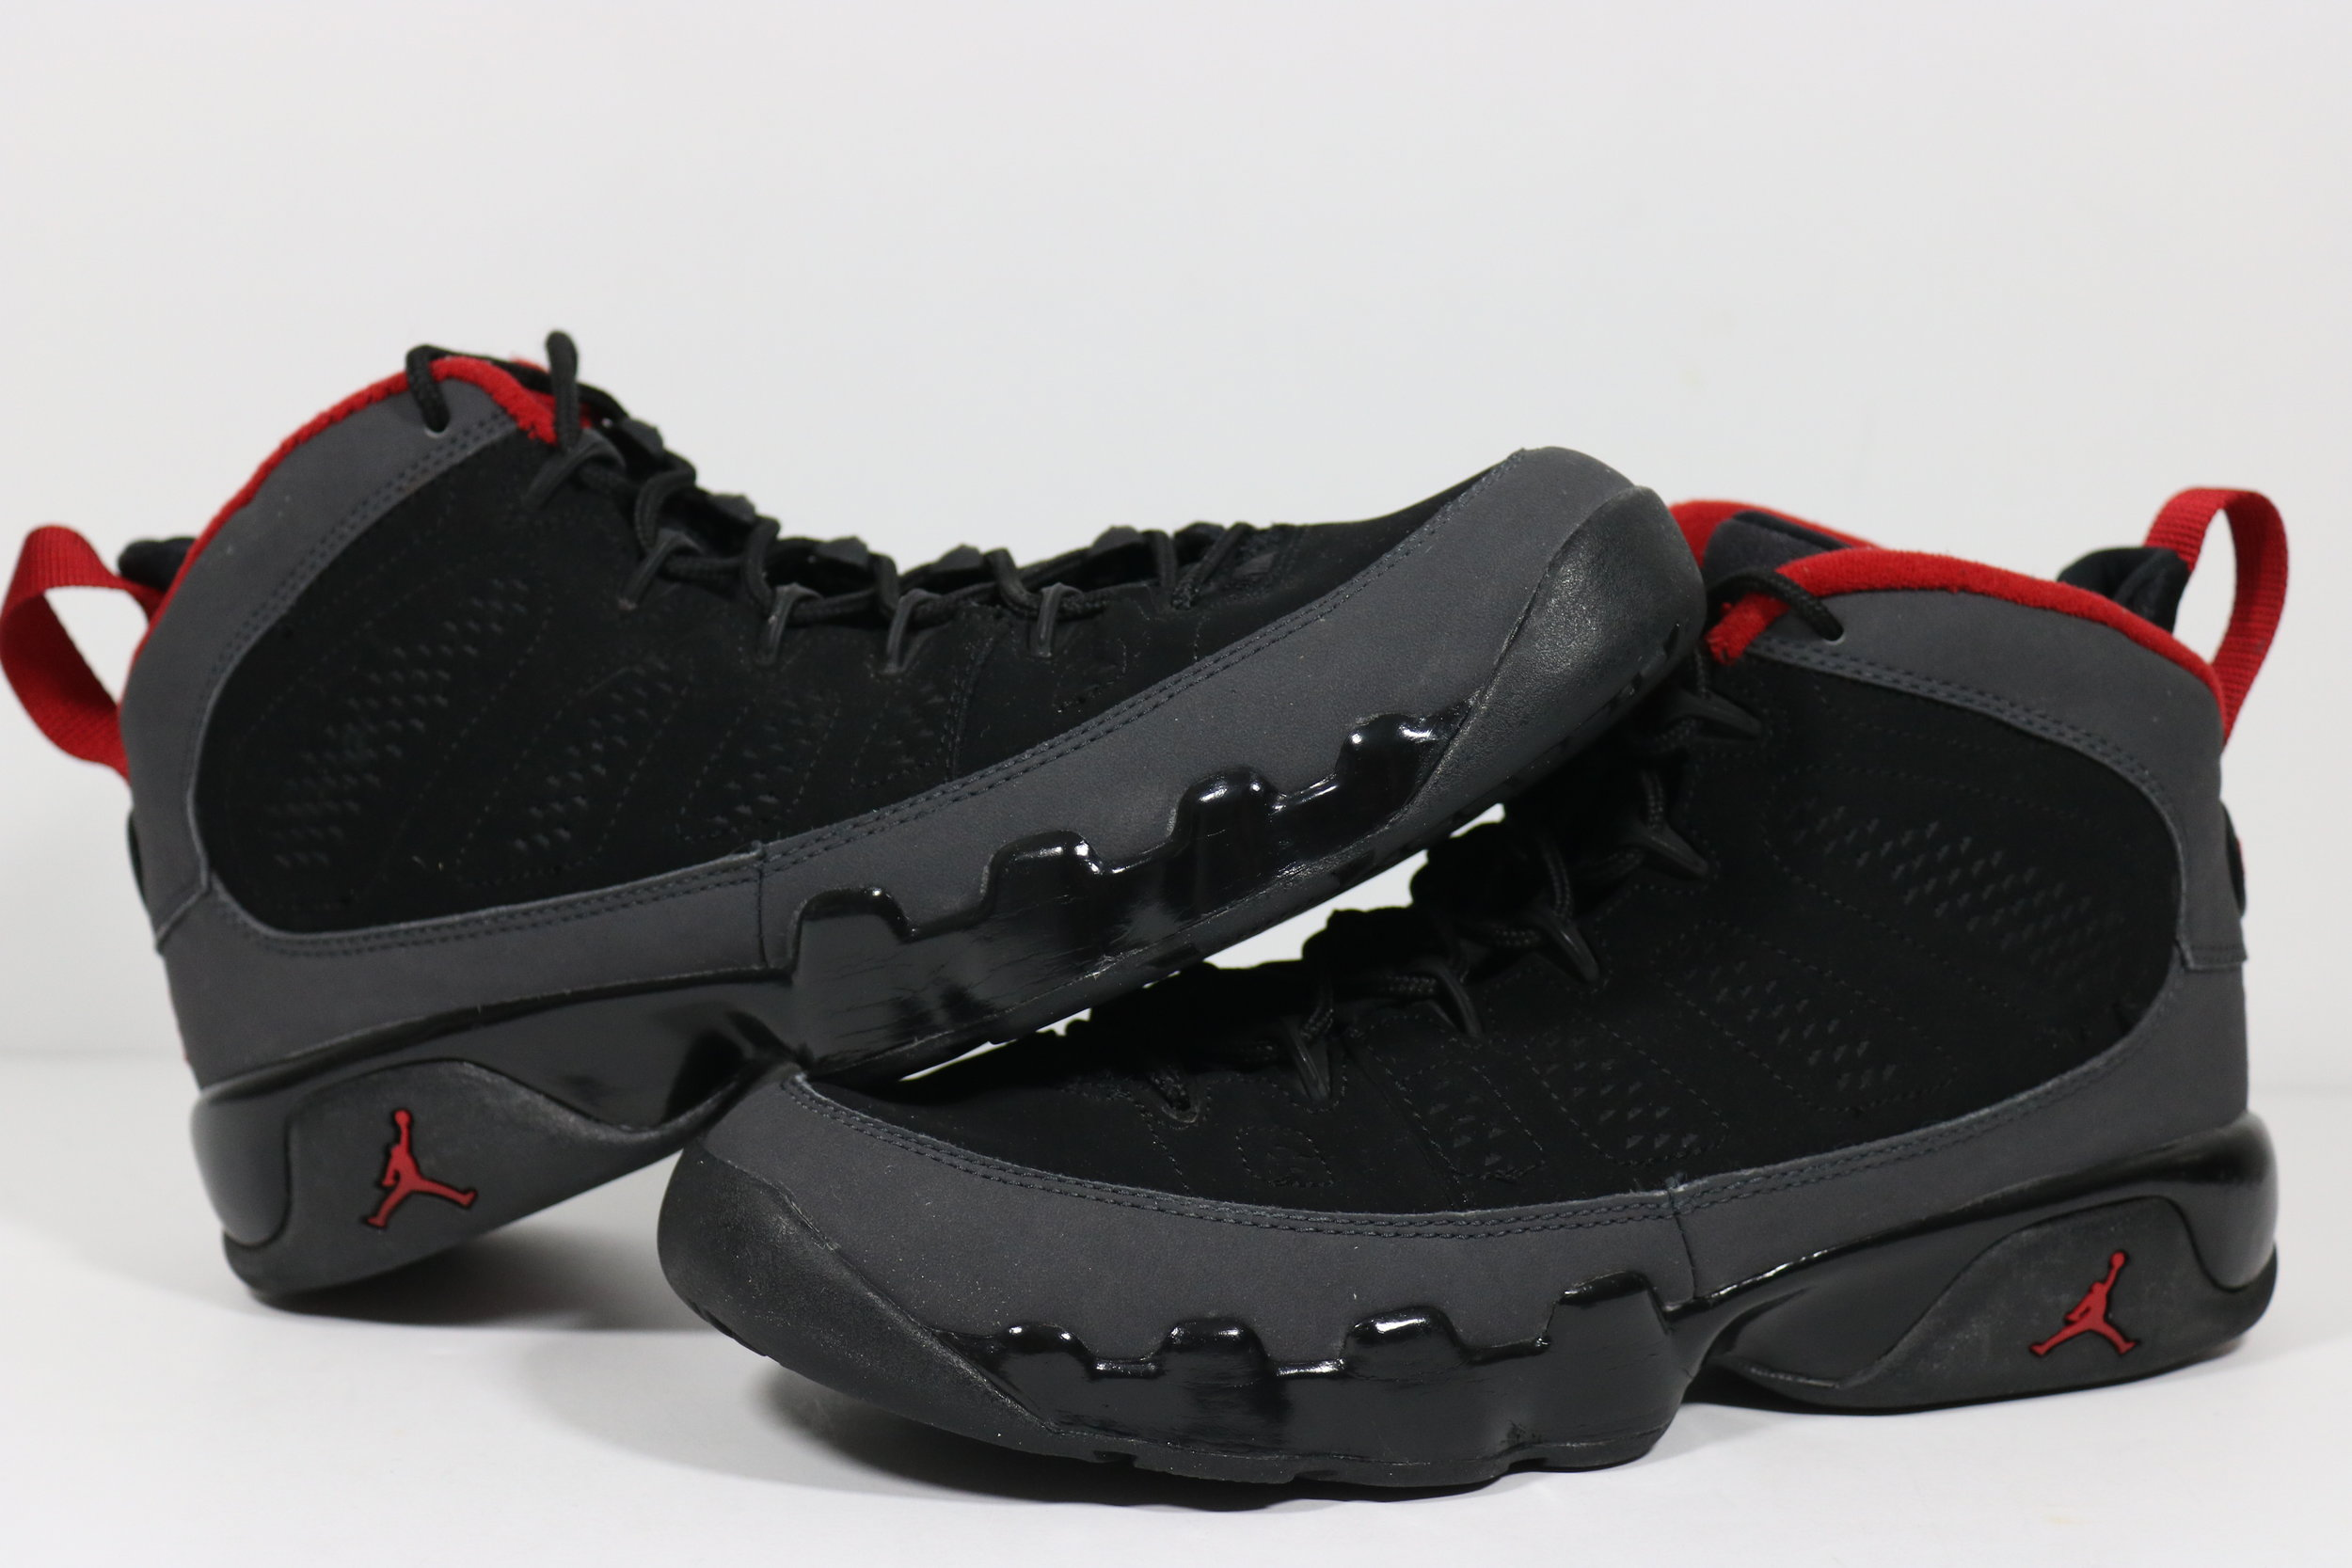 8fcacd36055e nike air jordan 9 retro gs black varsity red dark charcoal size 7y 302359  005 preowned